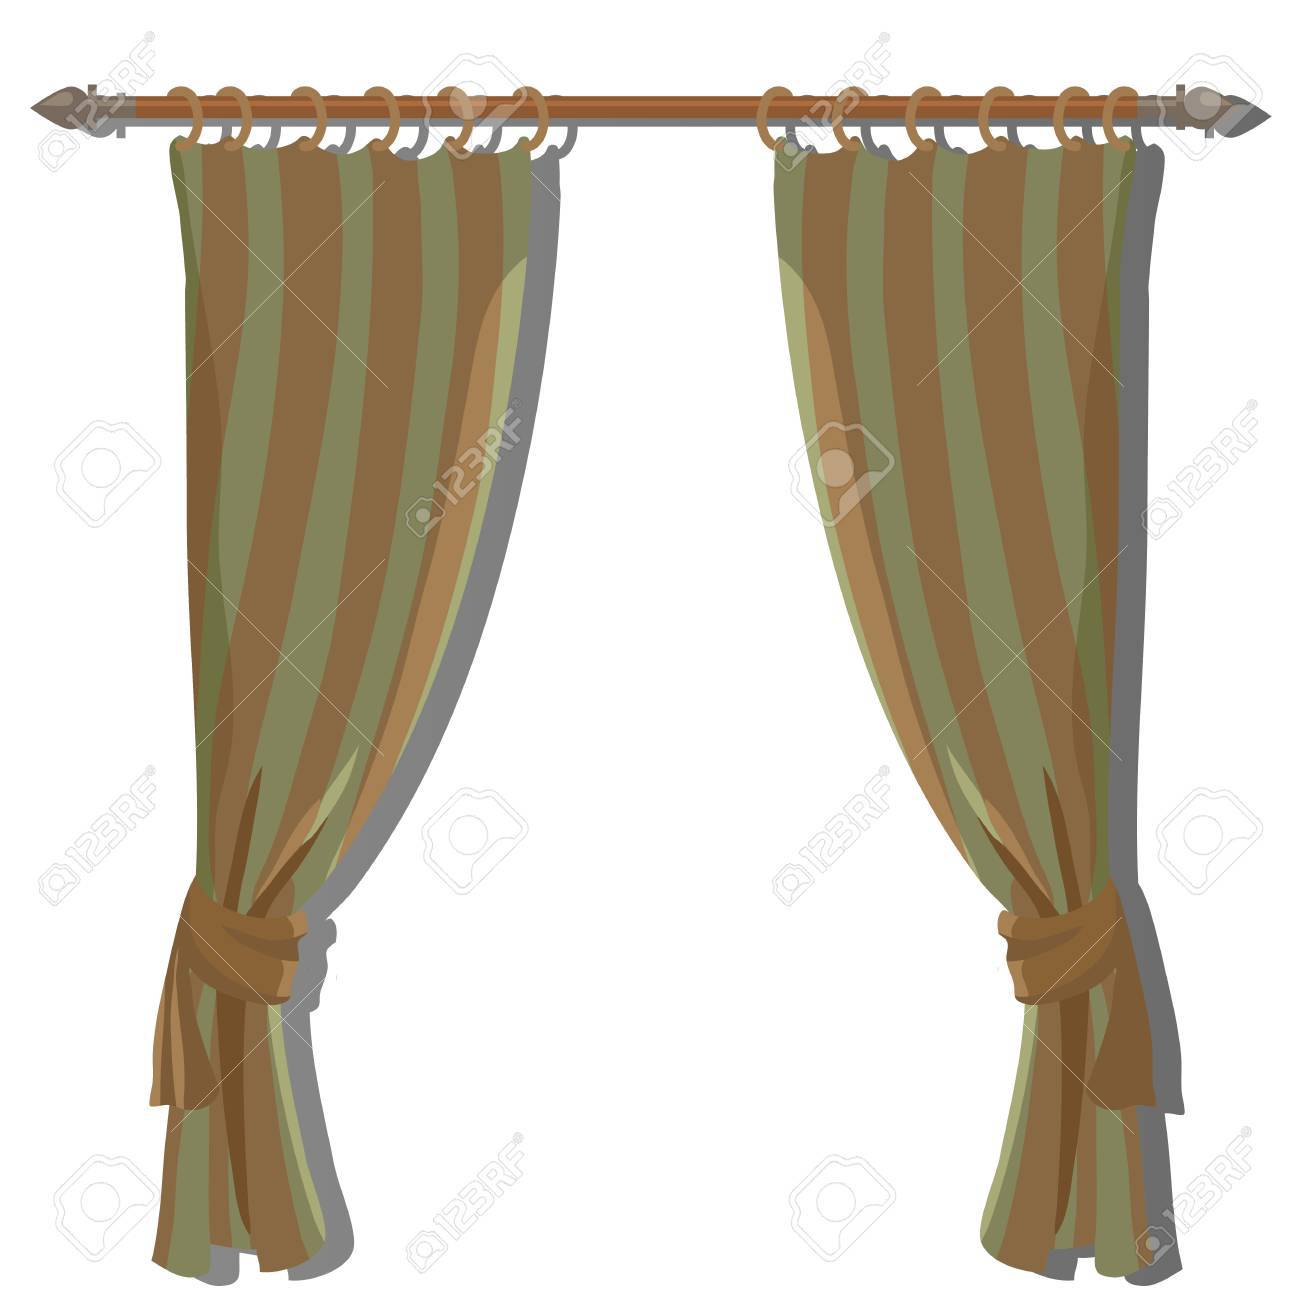 Green Striped Kitchen Curtains On The Ledge Vector Decor Royalty Free Cliparts Vectors And Stock Illustration Image 58060445